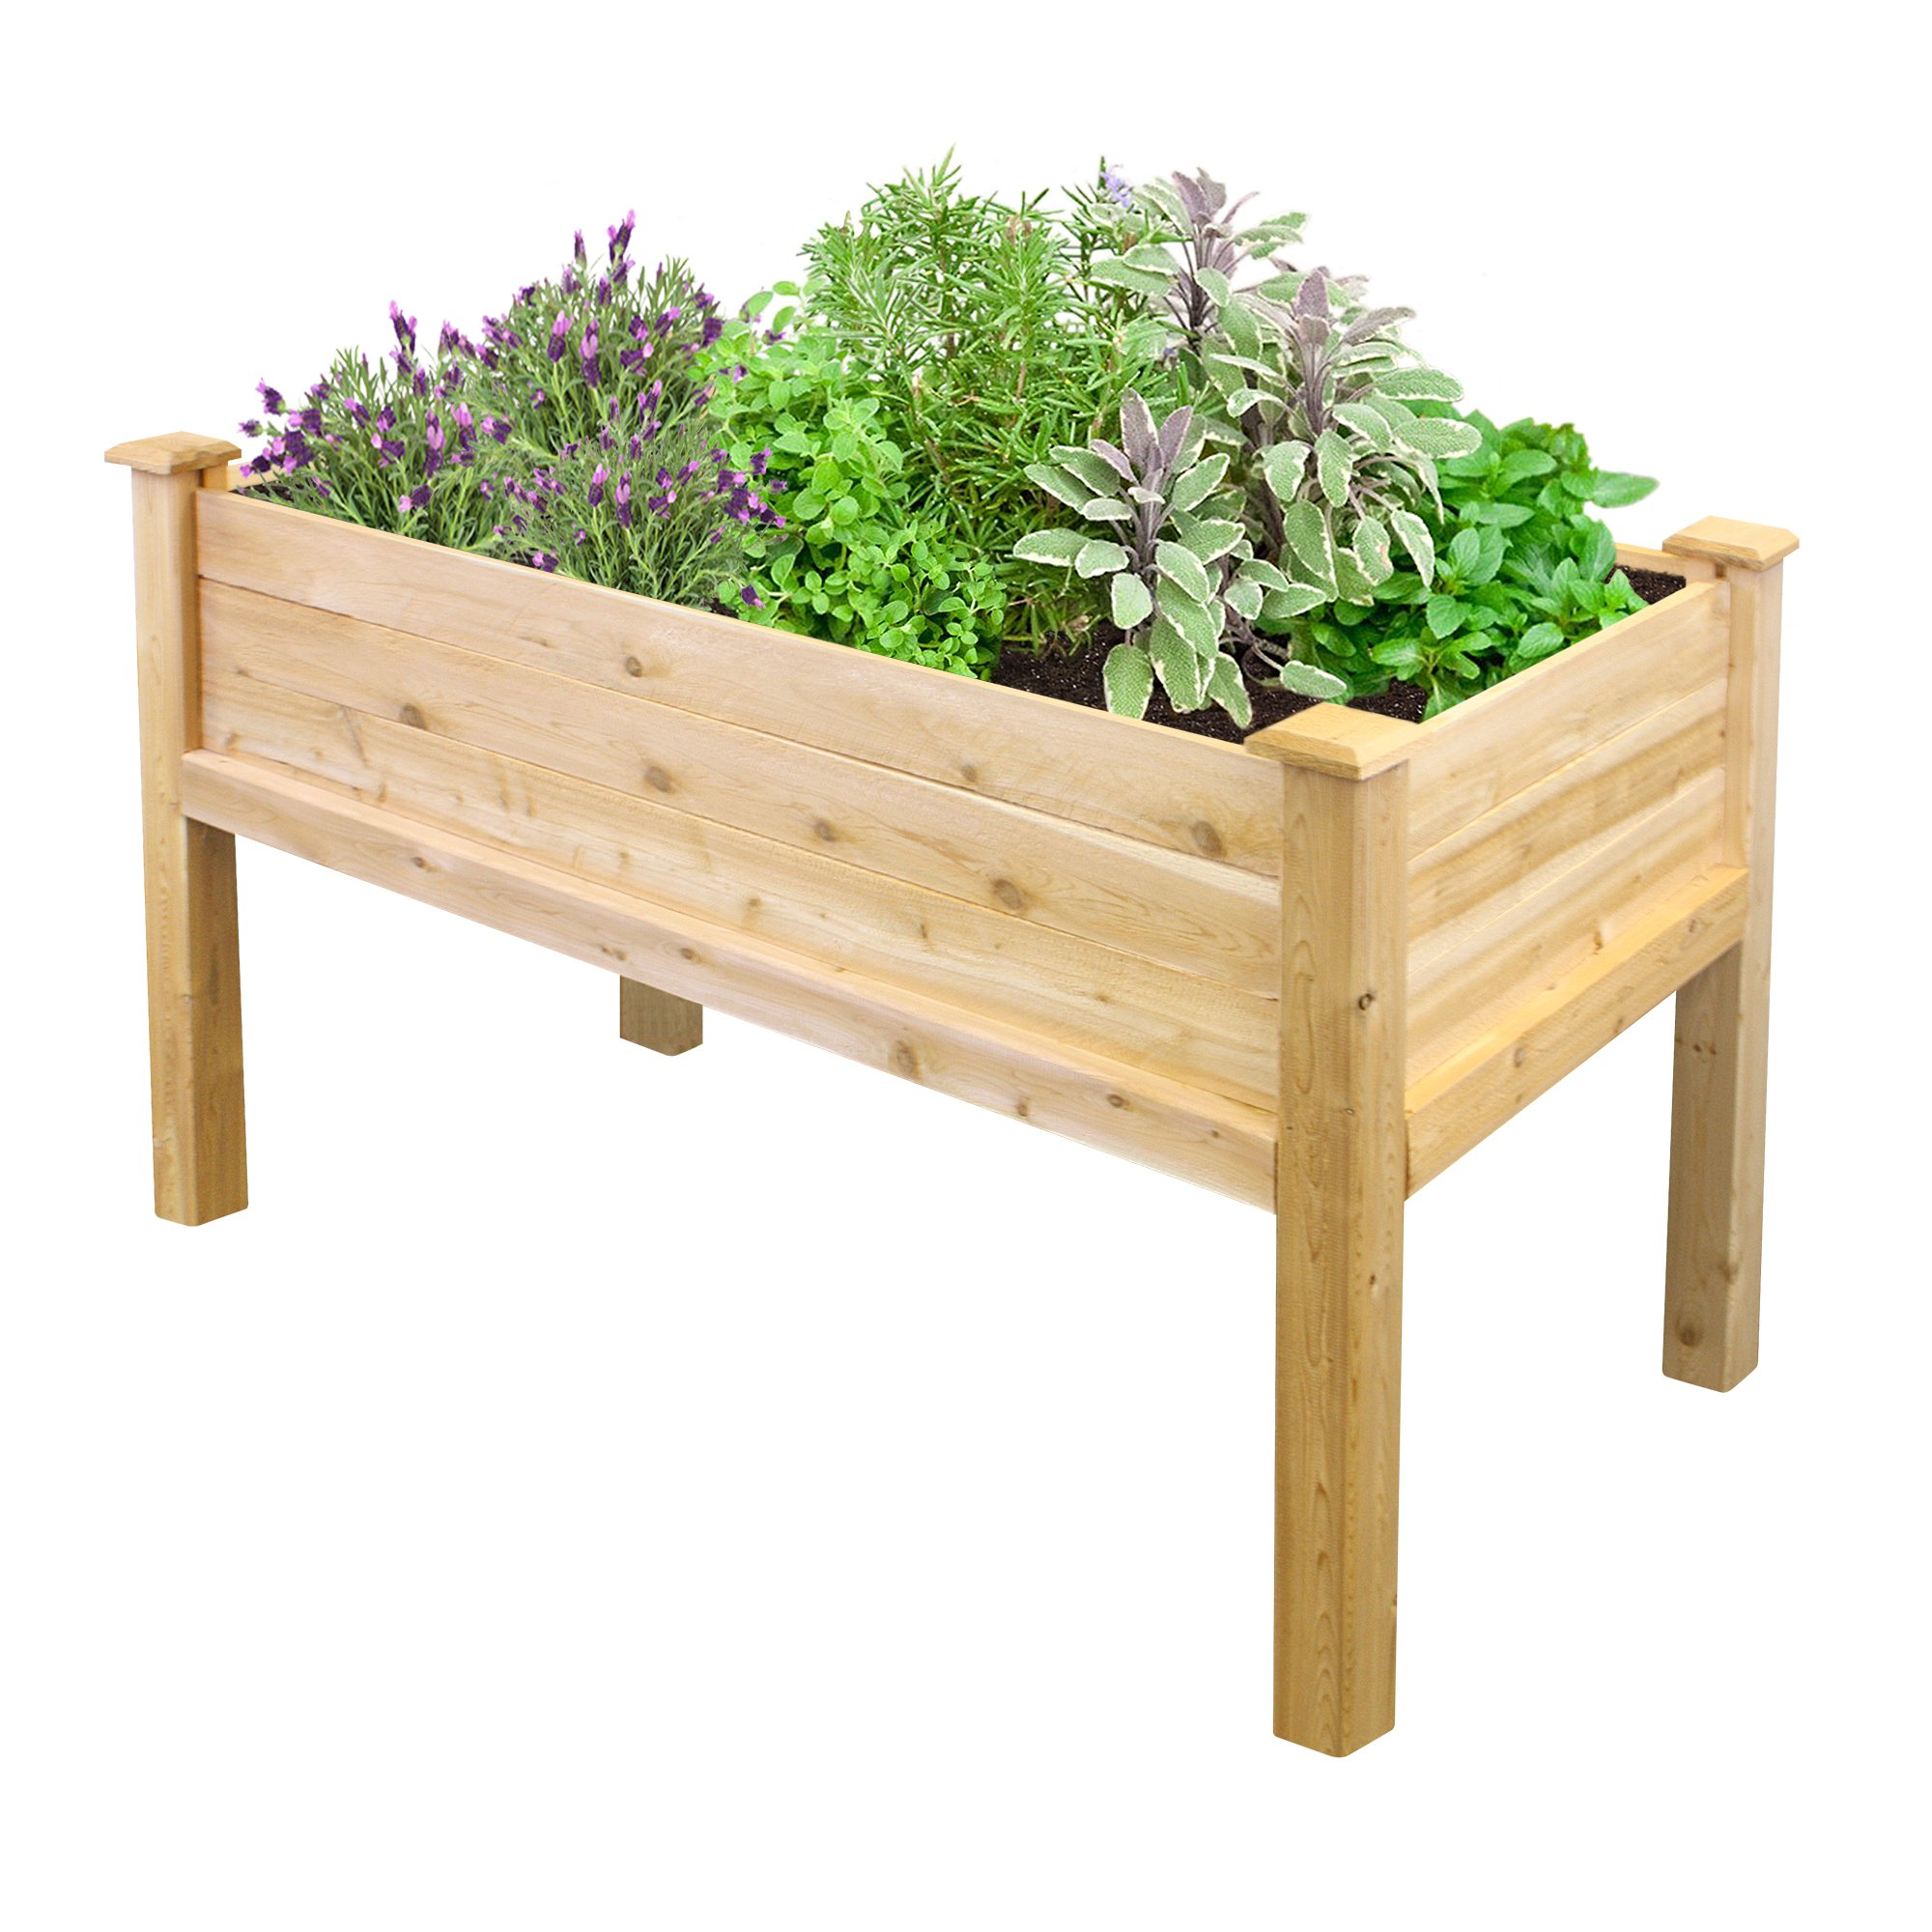 Greenes Fence Elevated Garden Bed, 48'' L x 24'' W x 31'', Cedar by Greenes Fence